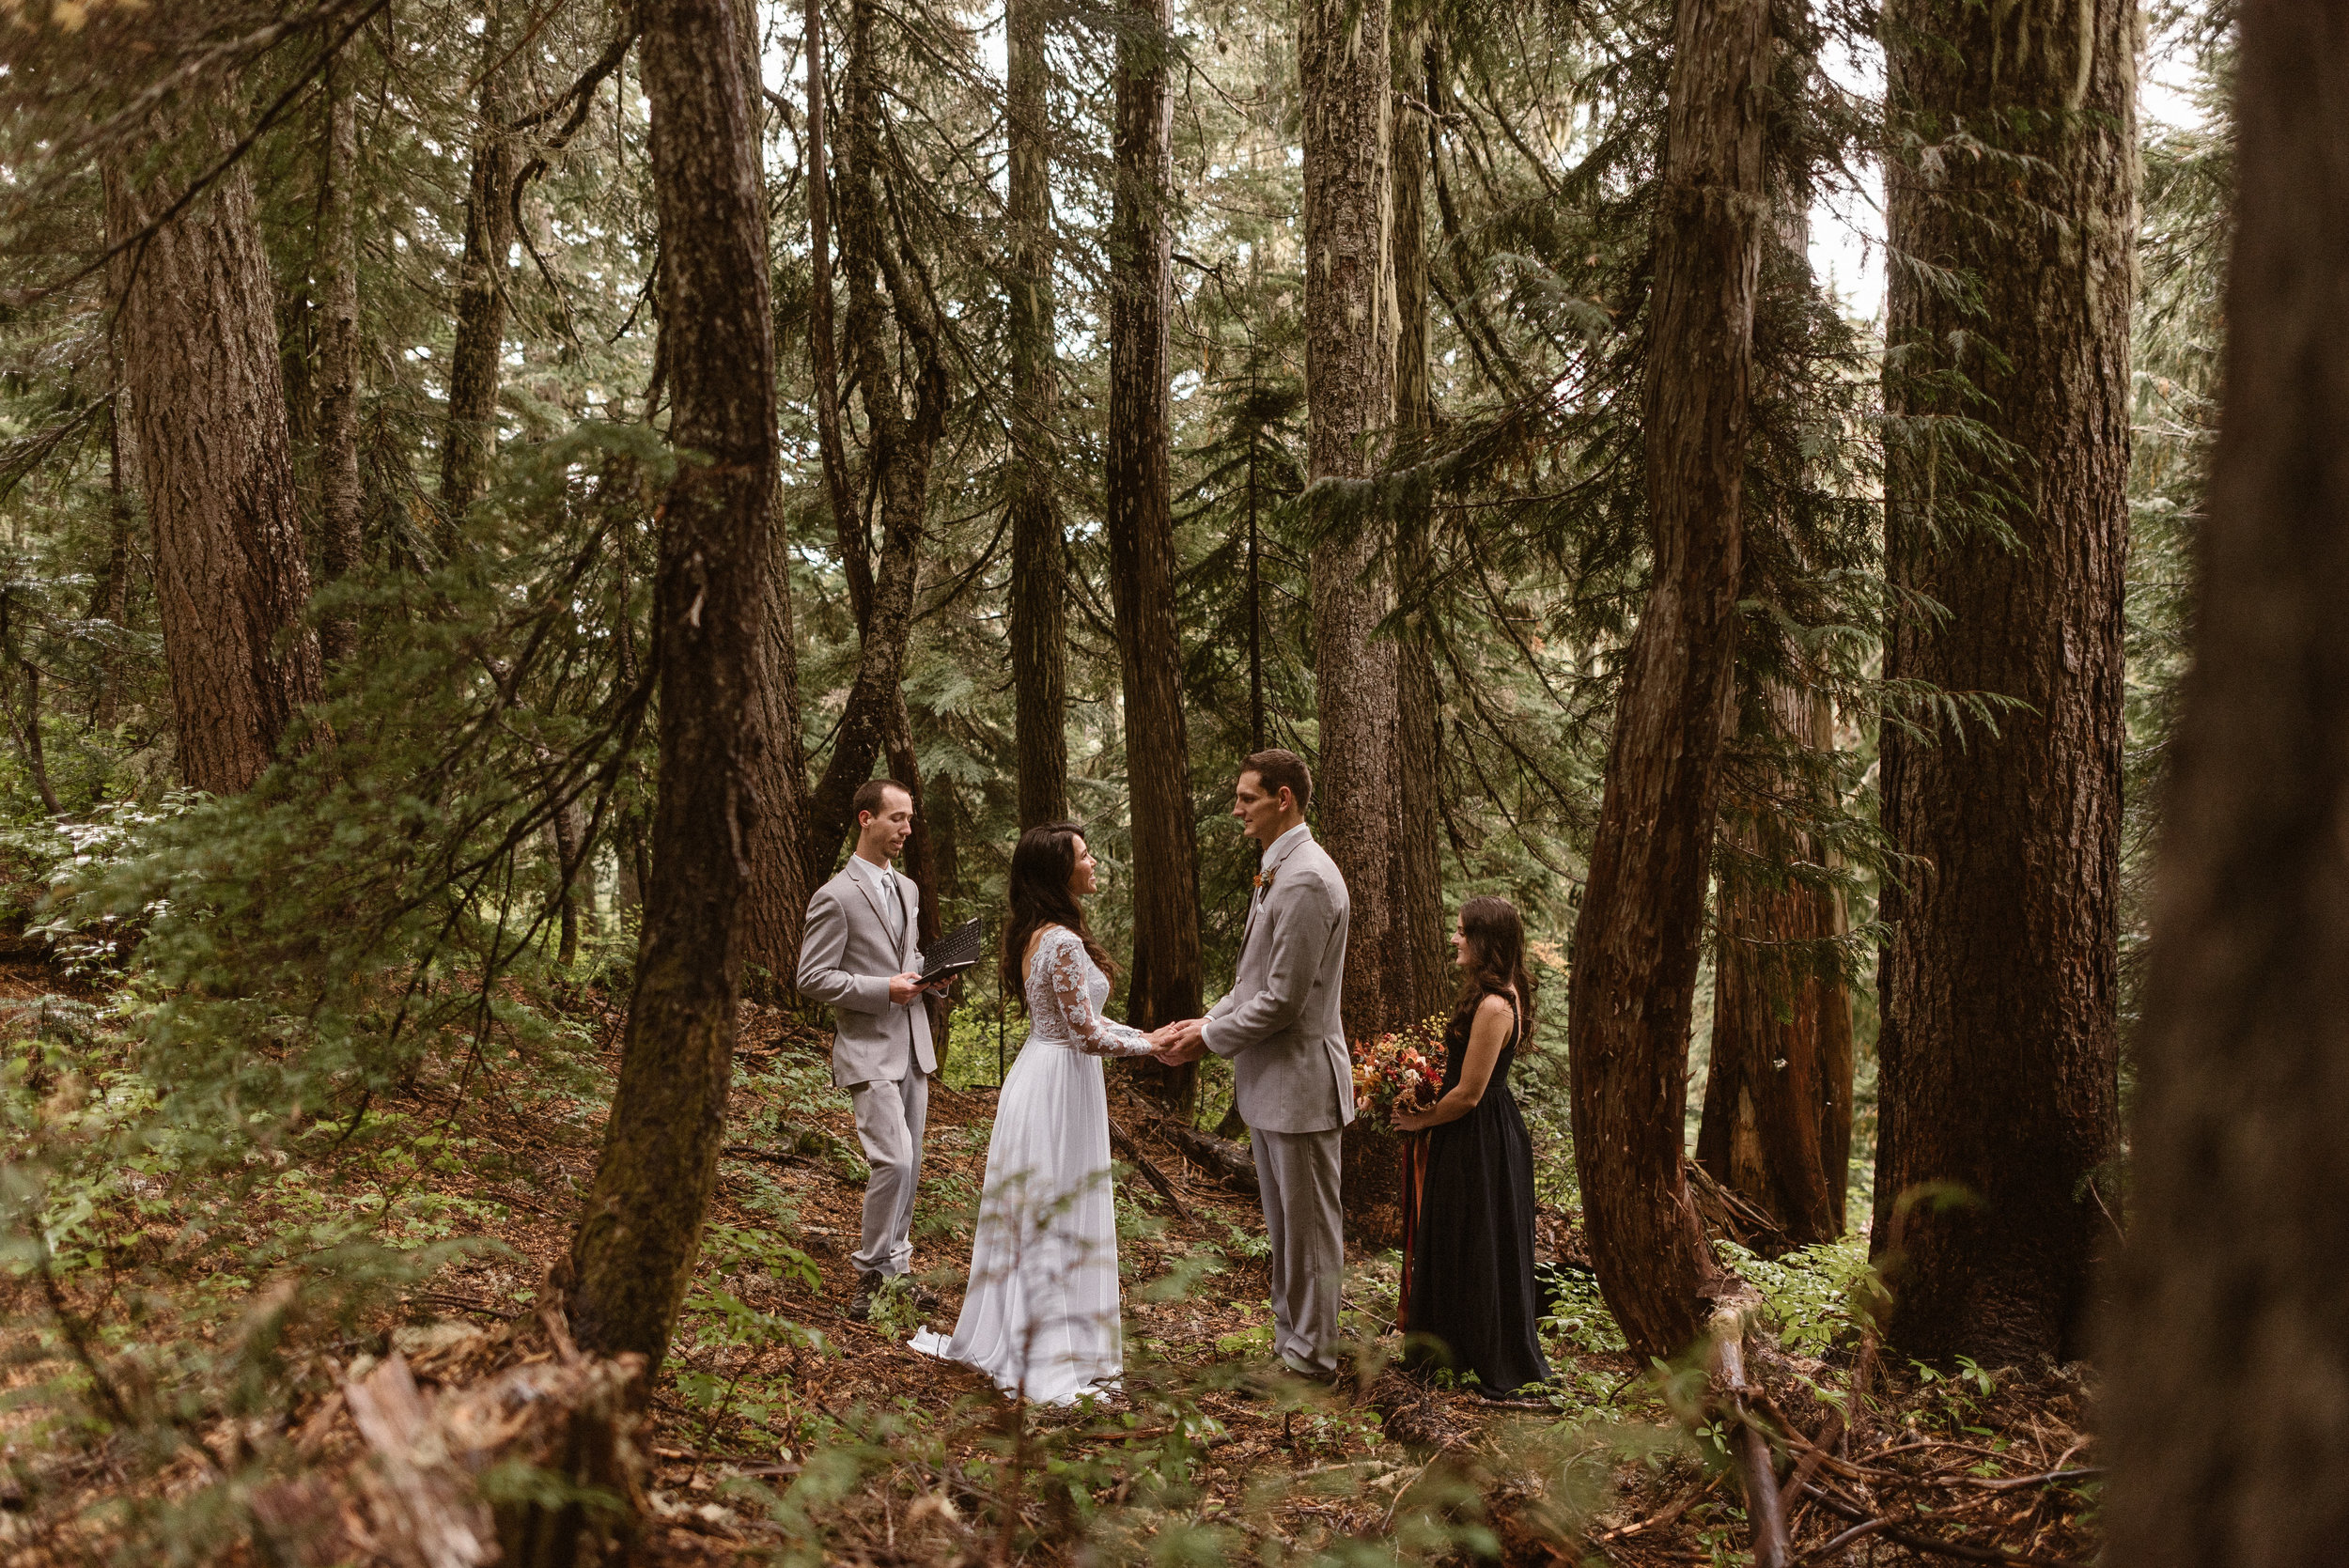 mt-ranier-national-park-elopement-wedding-washington-elopement-photographer-maddie-mae-adventure-wedding-photographer-hiking-elopement-photographer